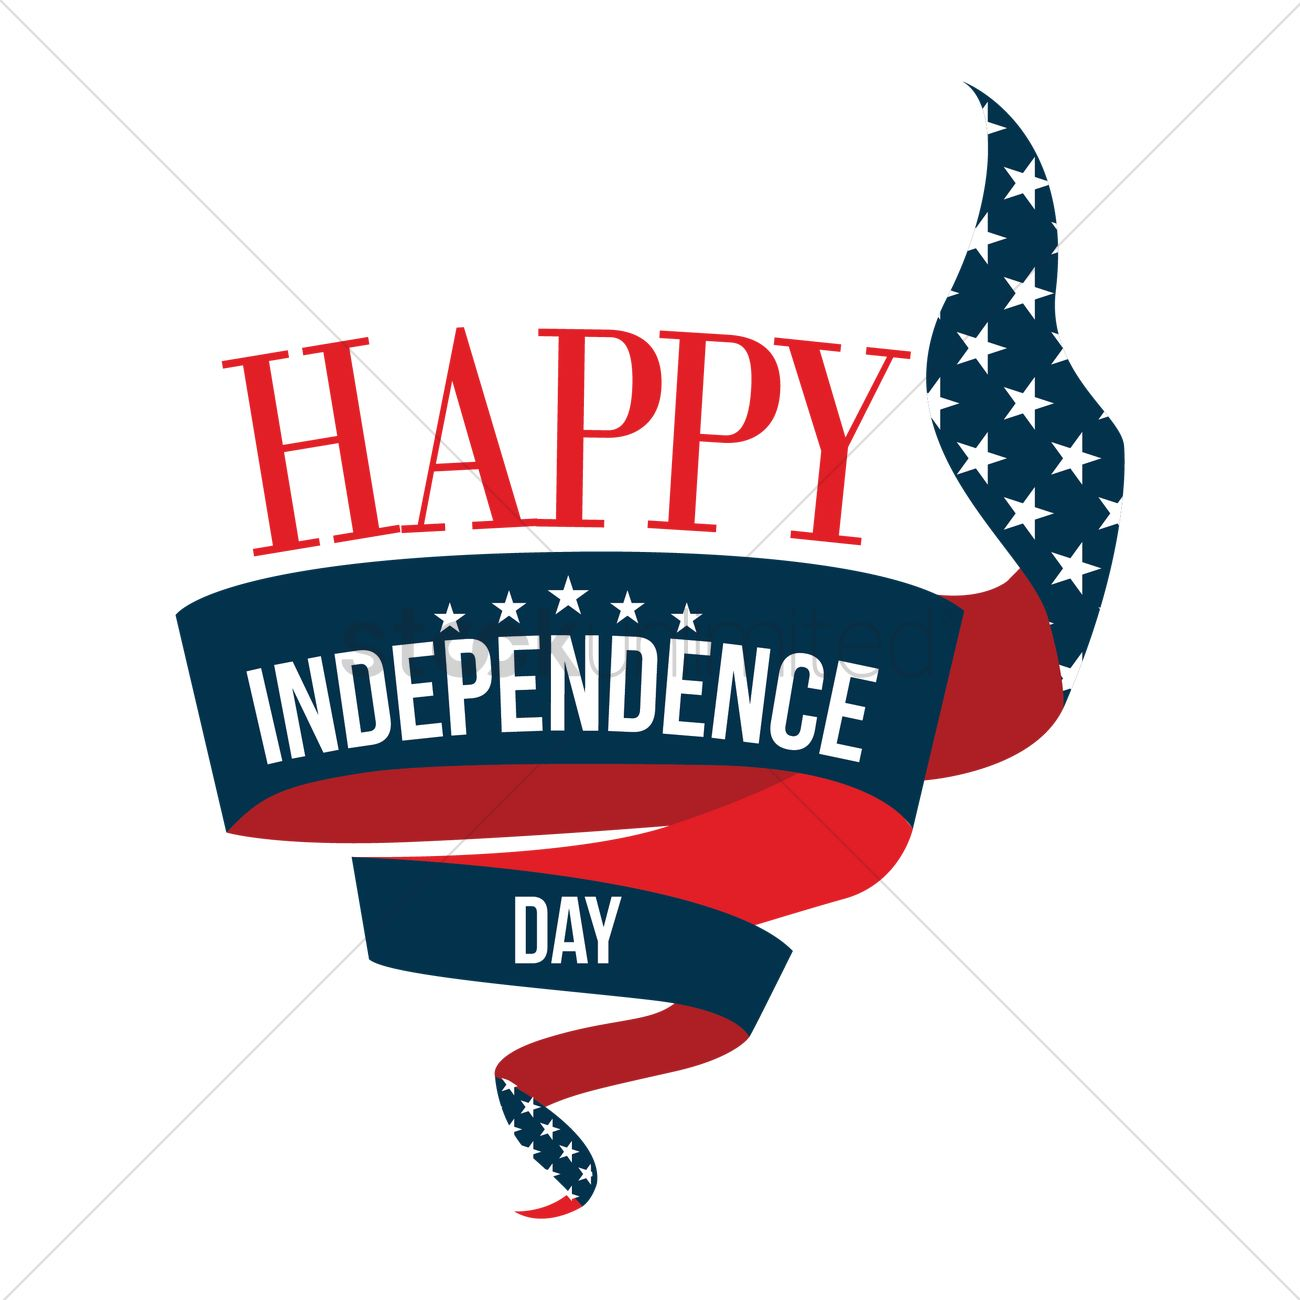 Happy Independence Day 4th Of July Banne-happy independence day 4th of july banner vector graphic-12